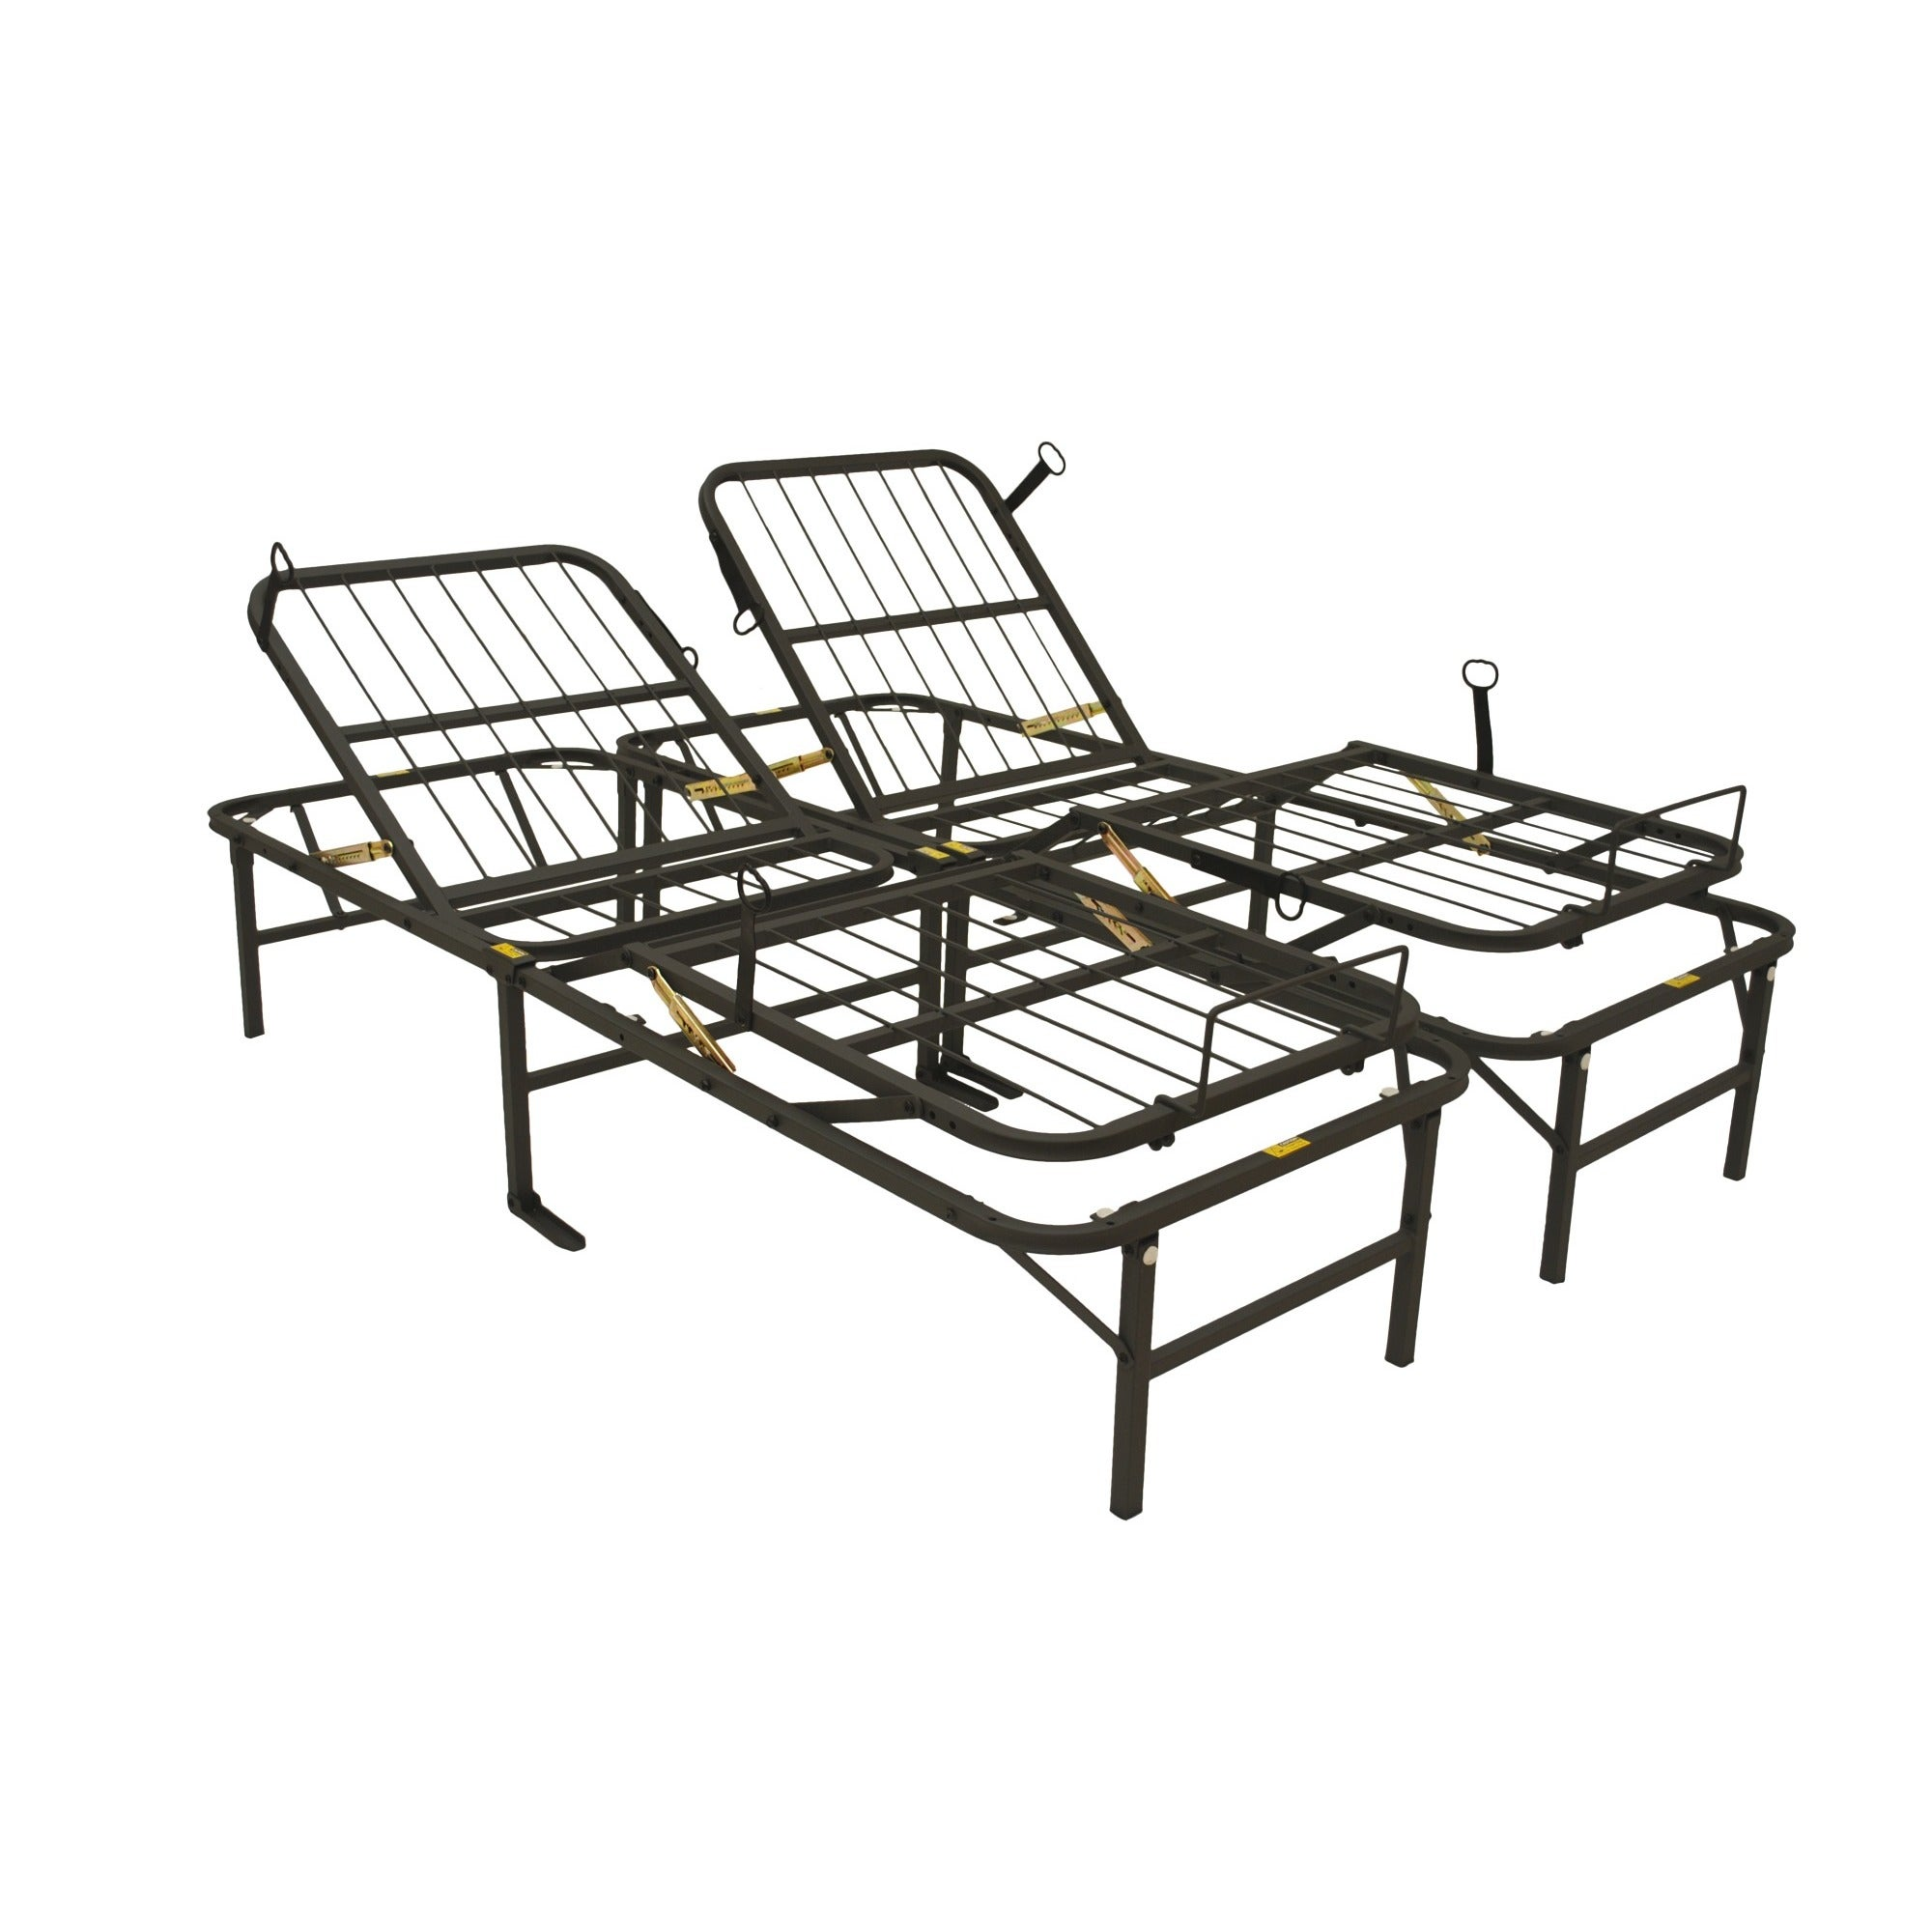 Shop Pragma Simple Adjust Head and Foot King-size Bed Frame - Free ...